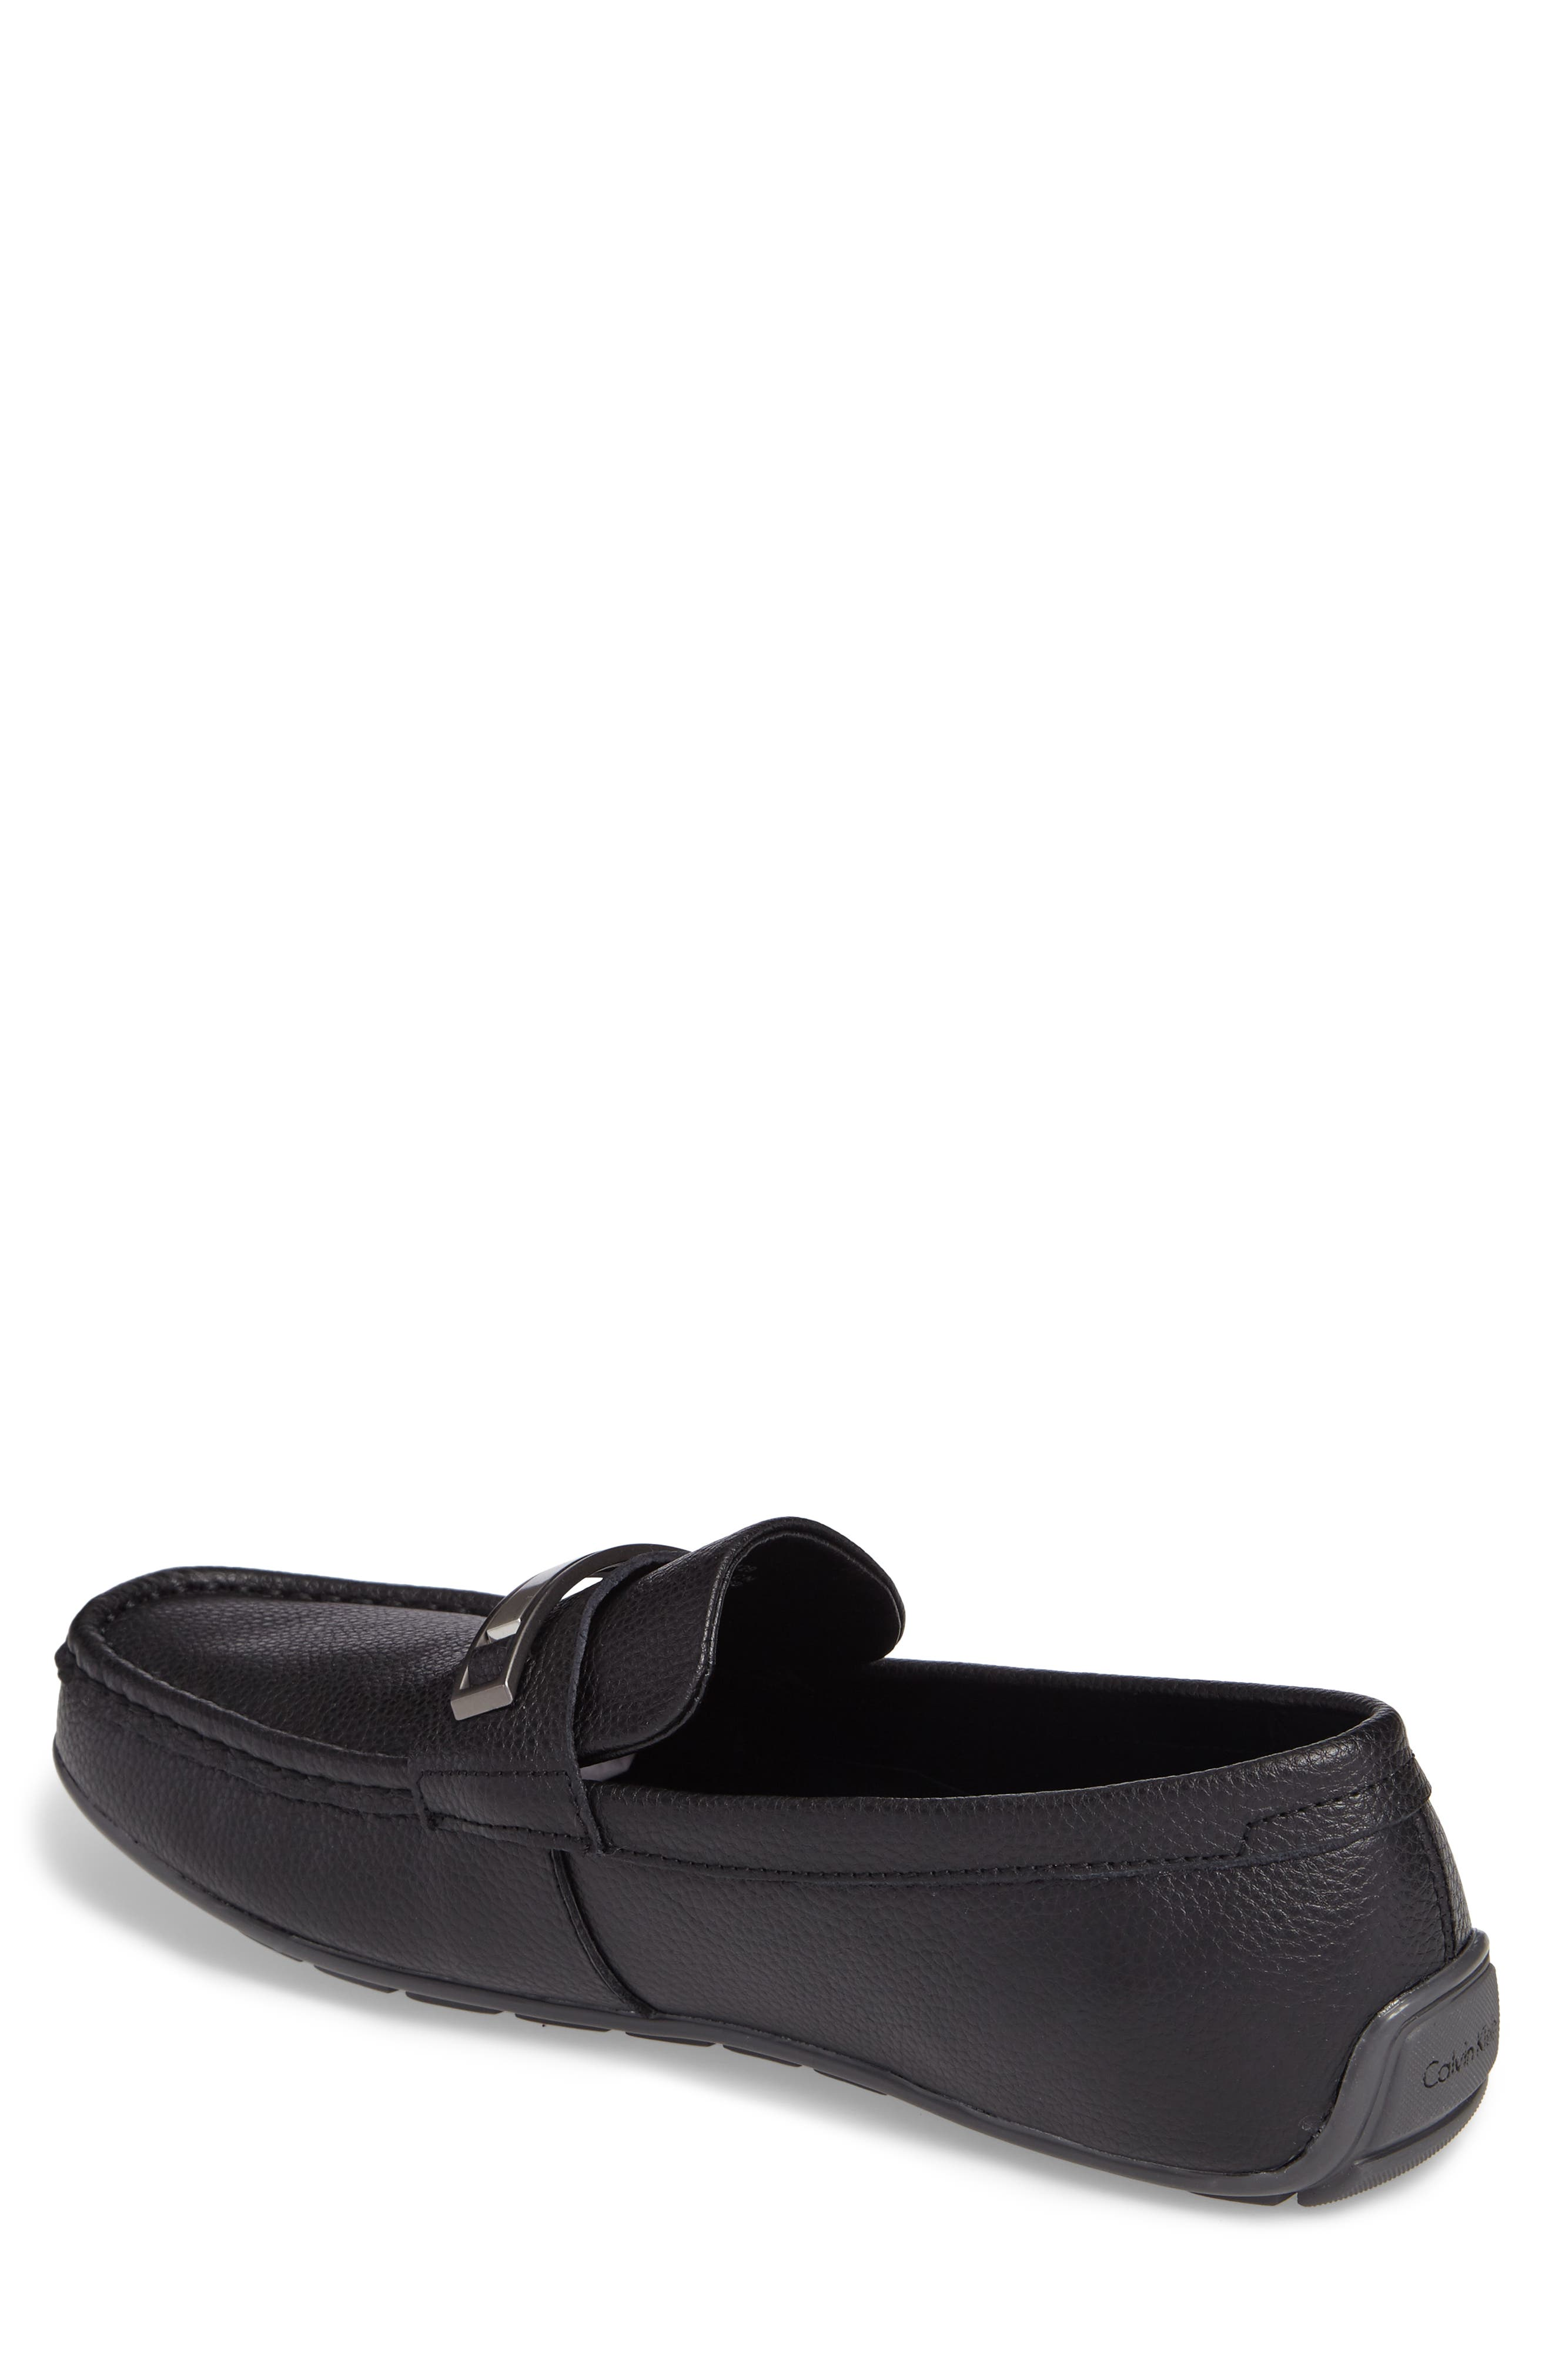 Irving Driving Loafer,                             Alternate thumbnail 2, color,                             Black Tumbled Leather